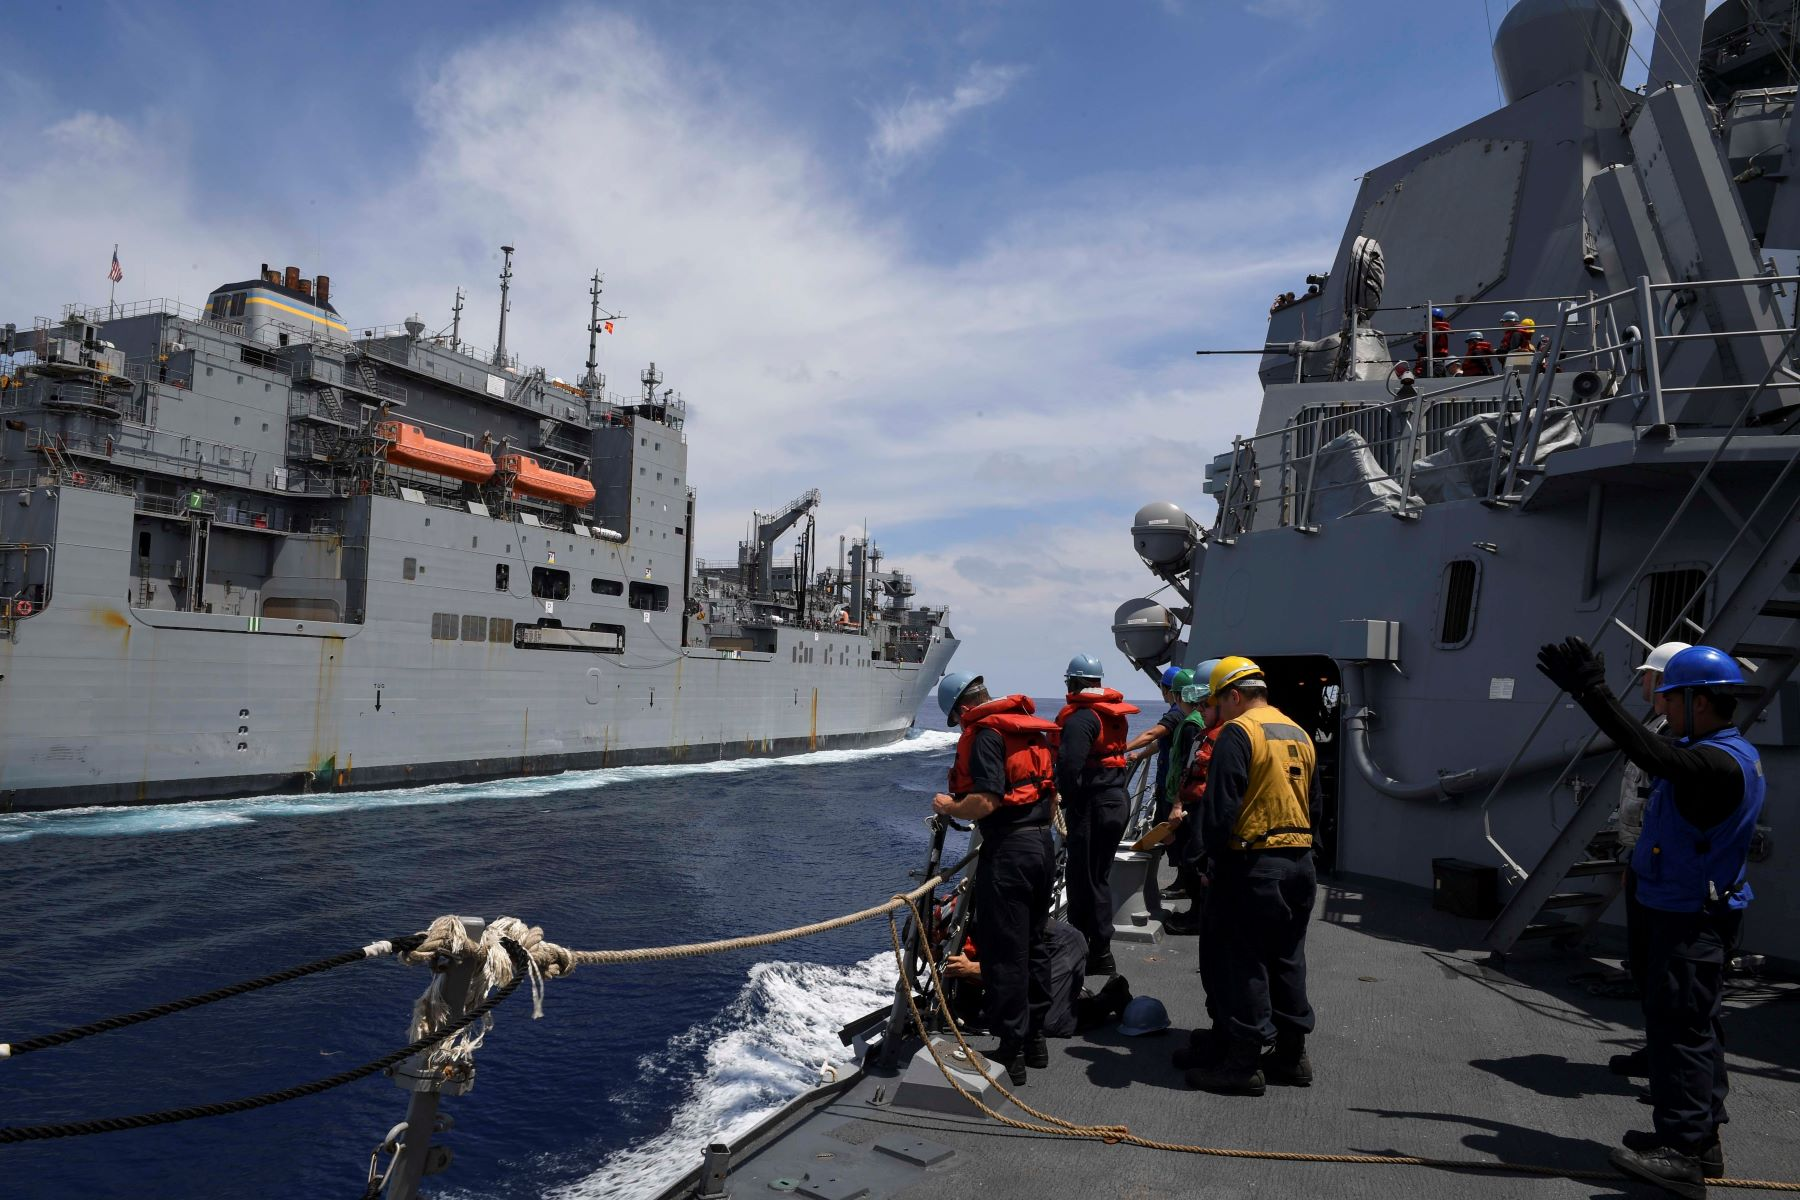 Hawaii Destroyer Ignores China in 'Freedom of Navigation' Sail in China Sea